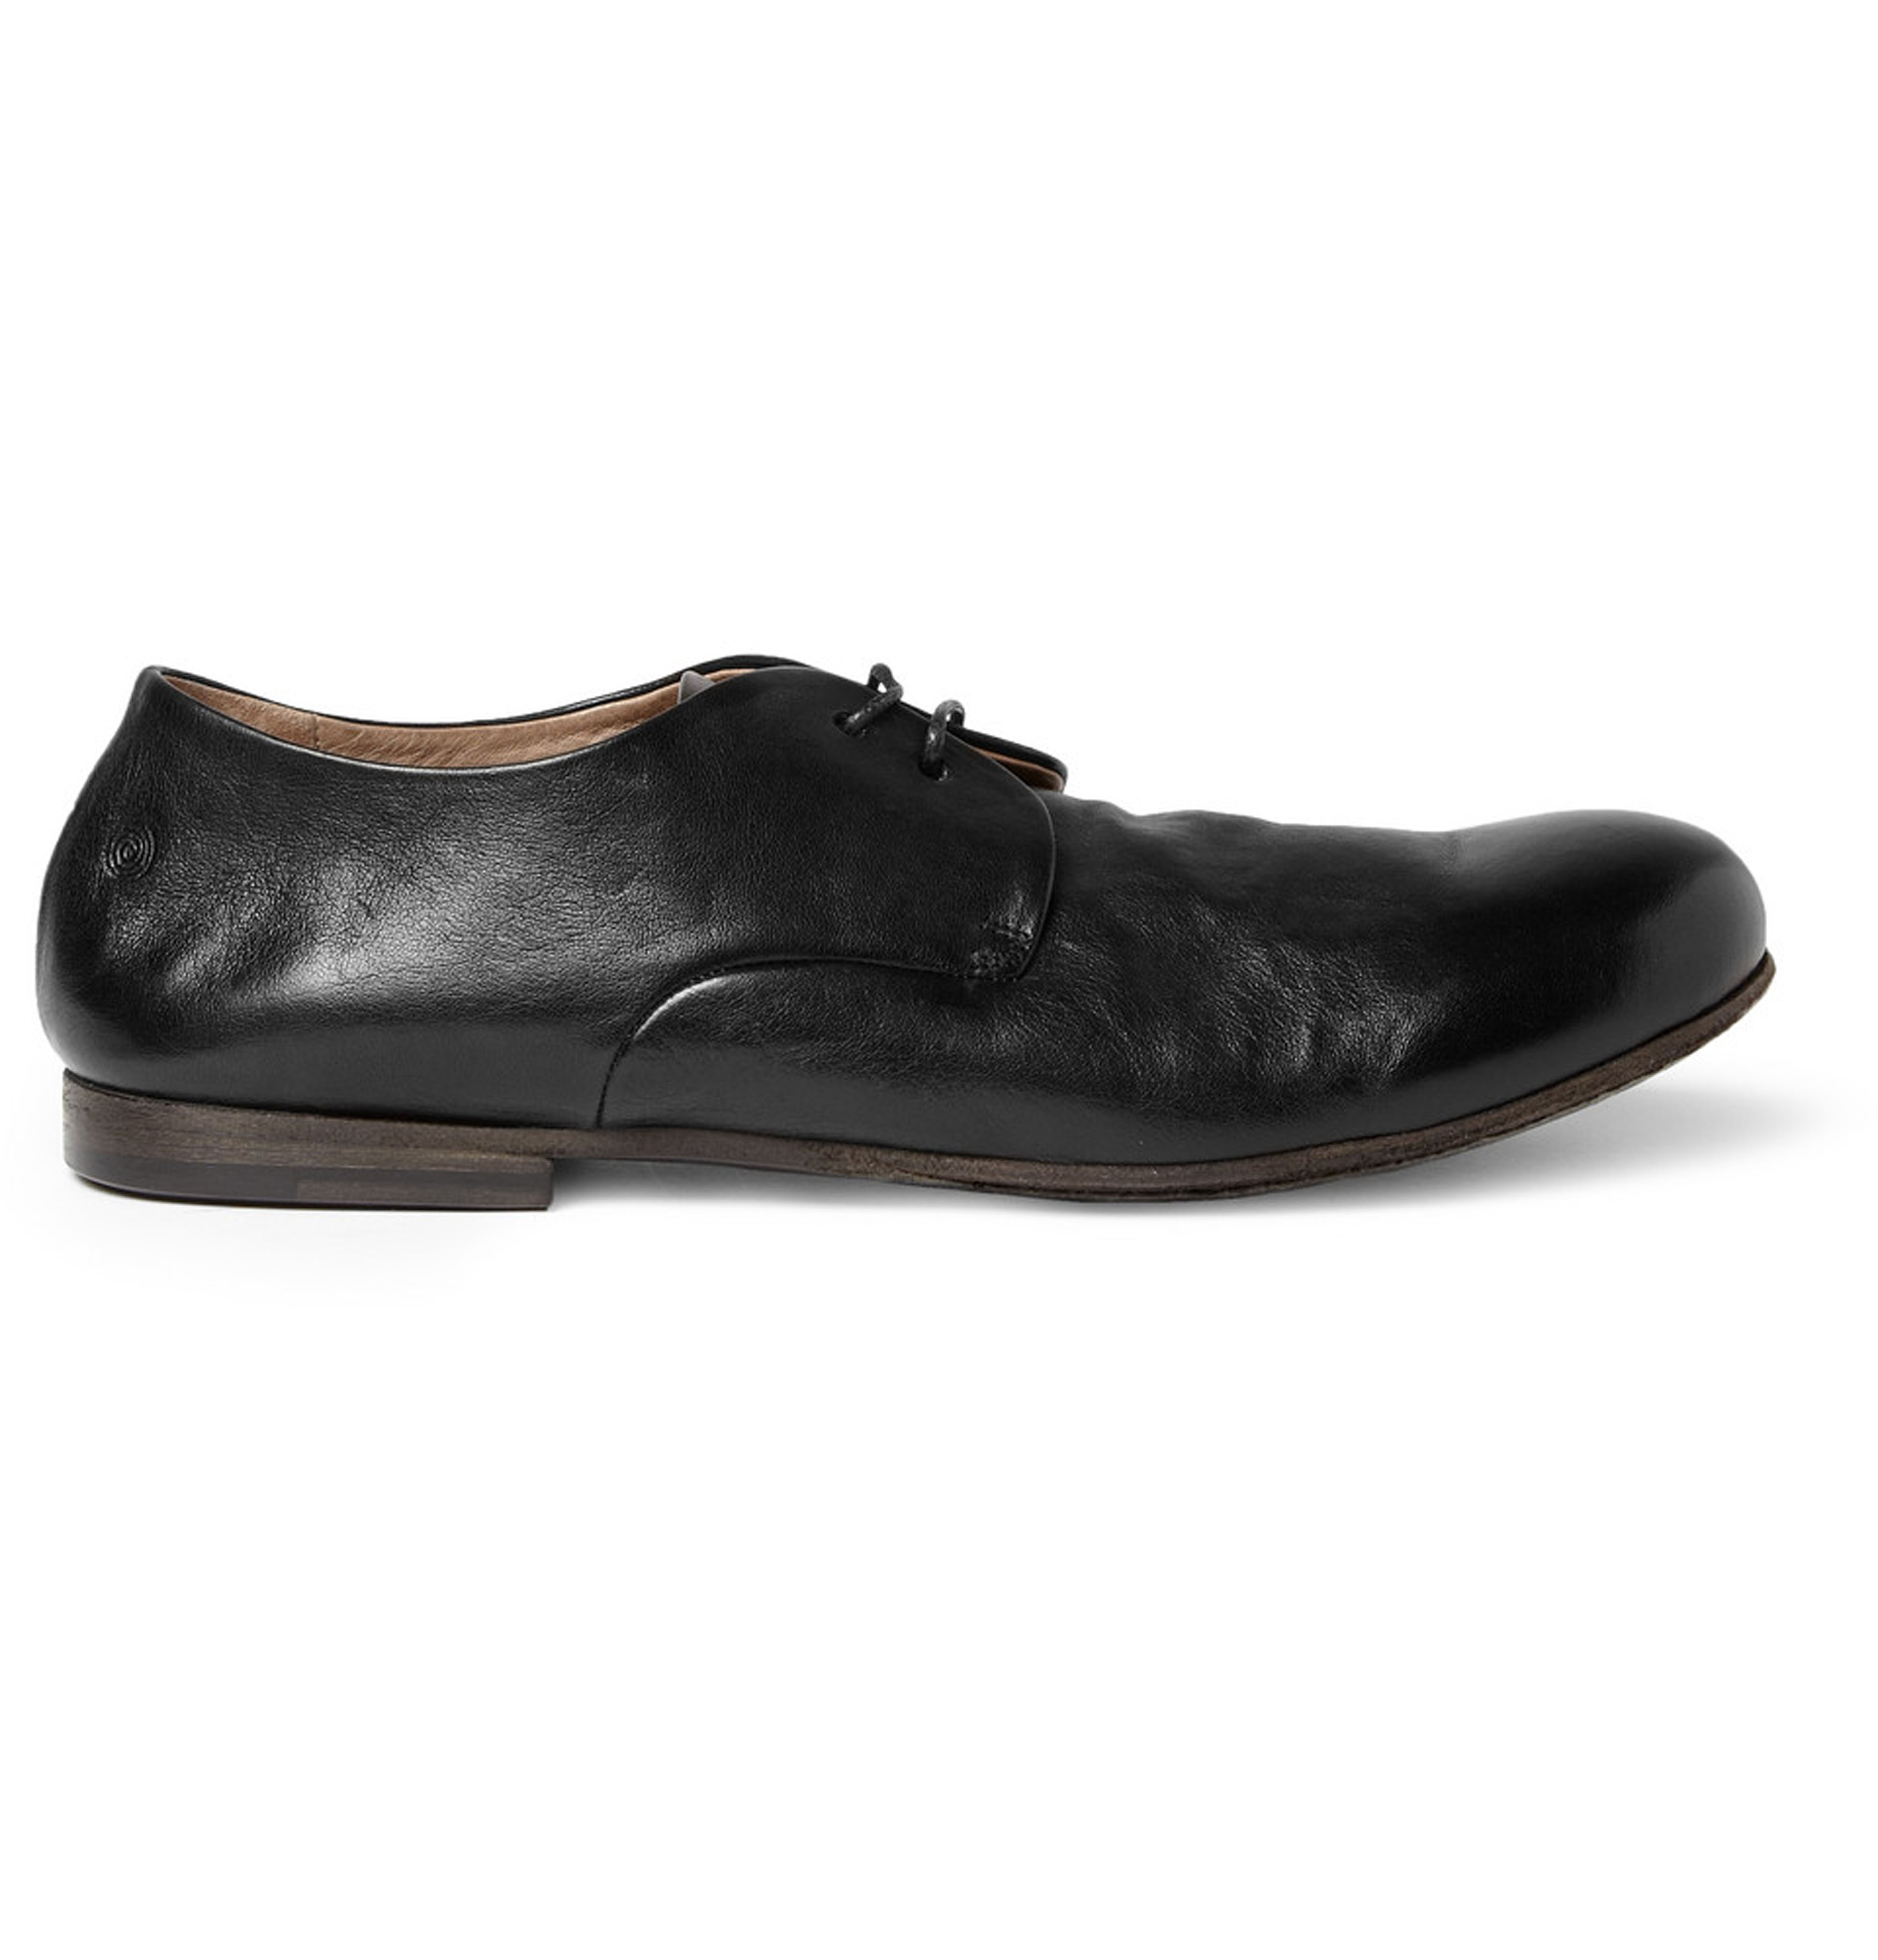 337077 - Marsell Shoes